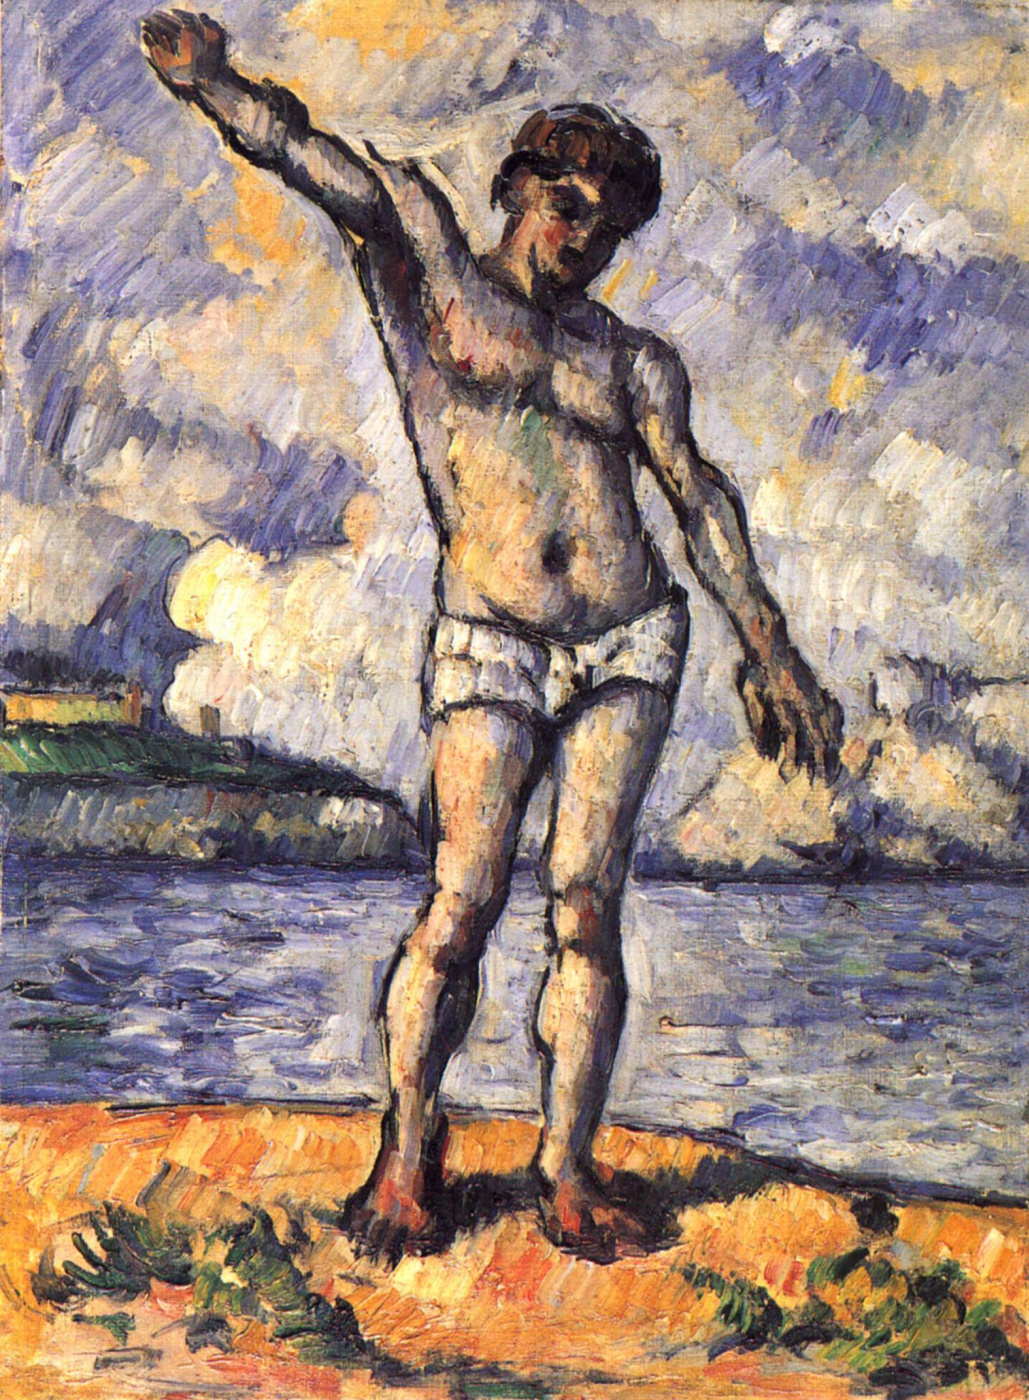 Paul Cezanne. Bather with crossed arms